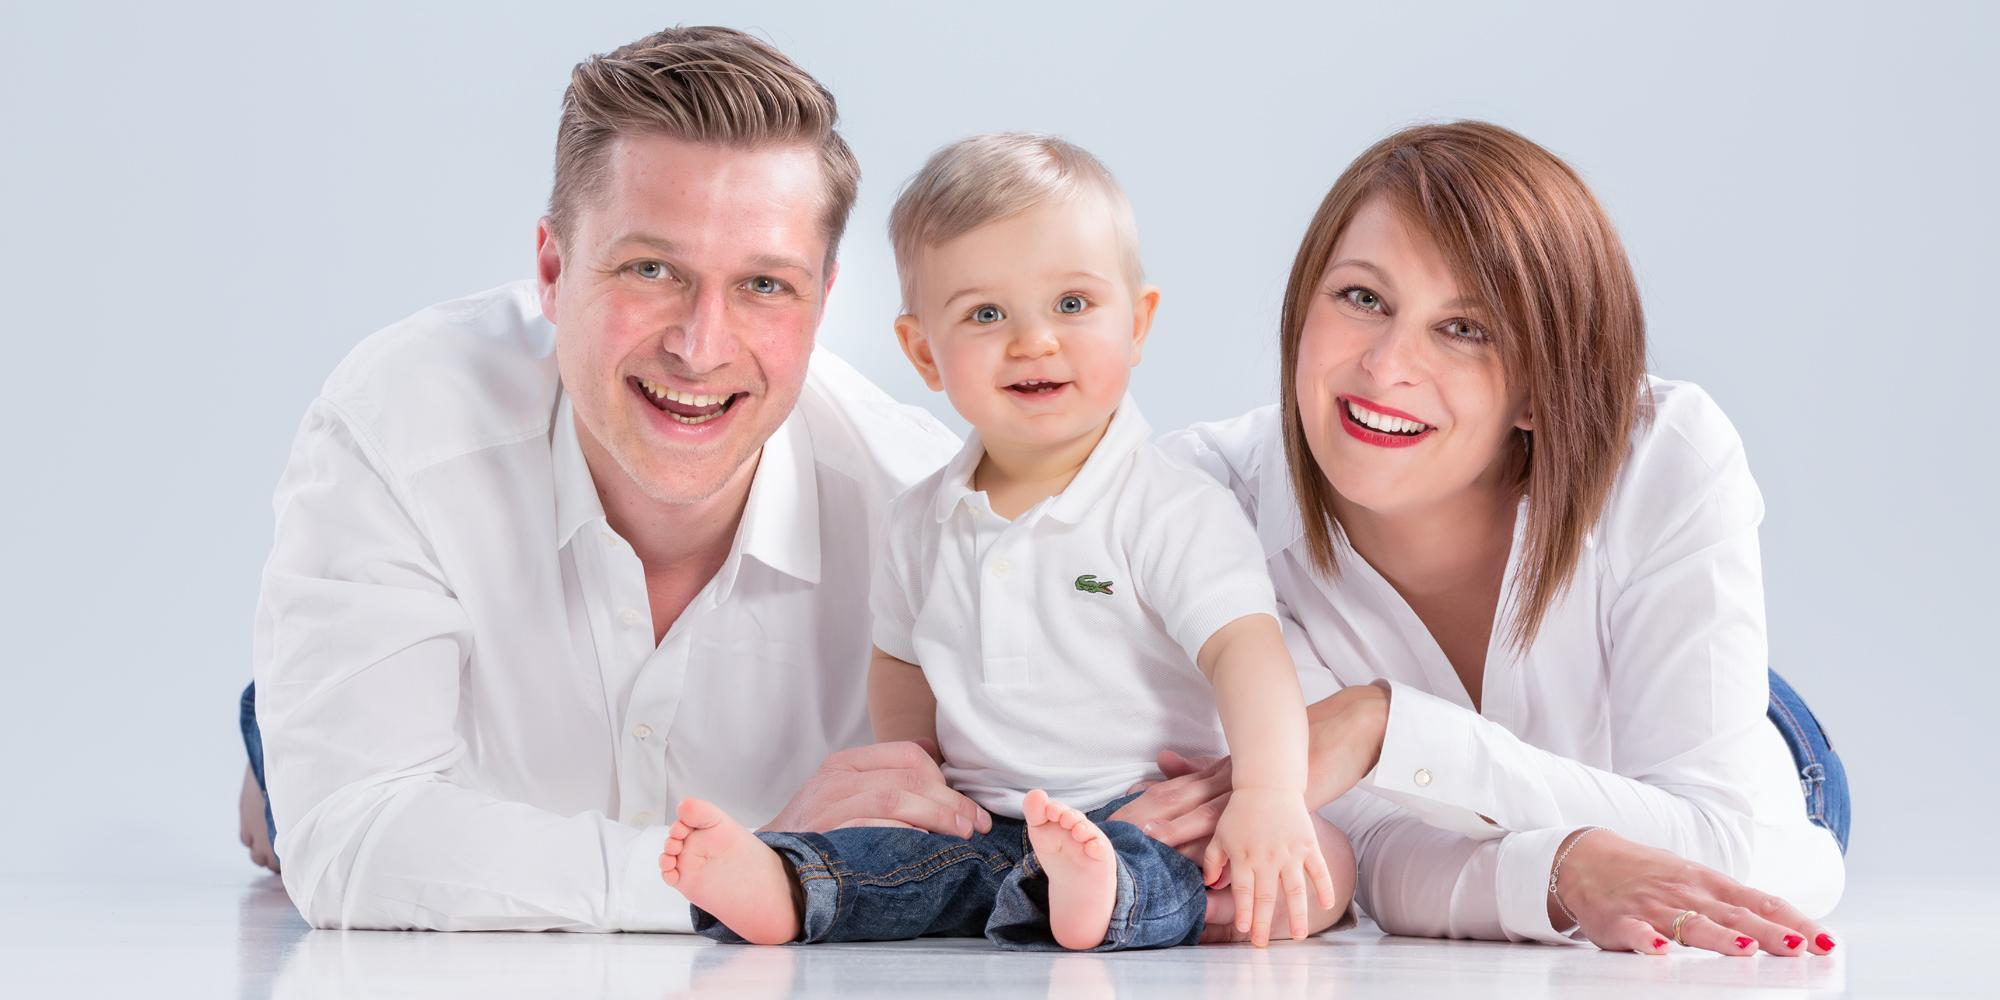 Photographe-Strasbourg-portrait-famille-groupe-solo-animaux-